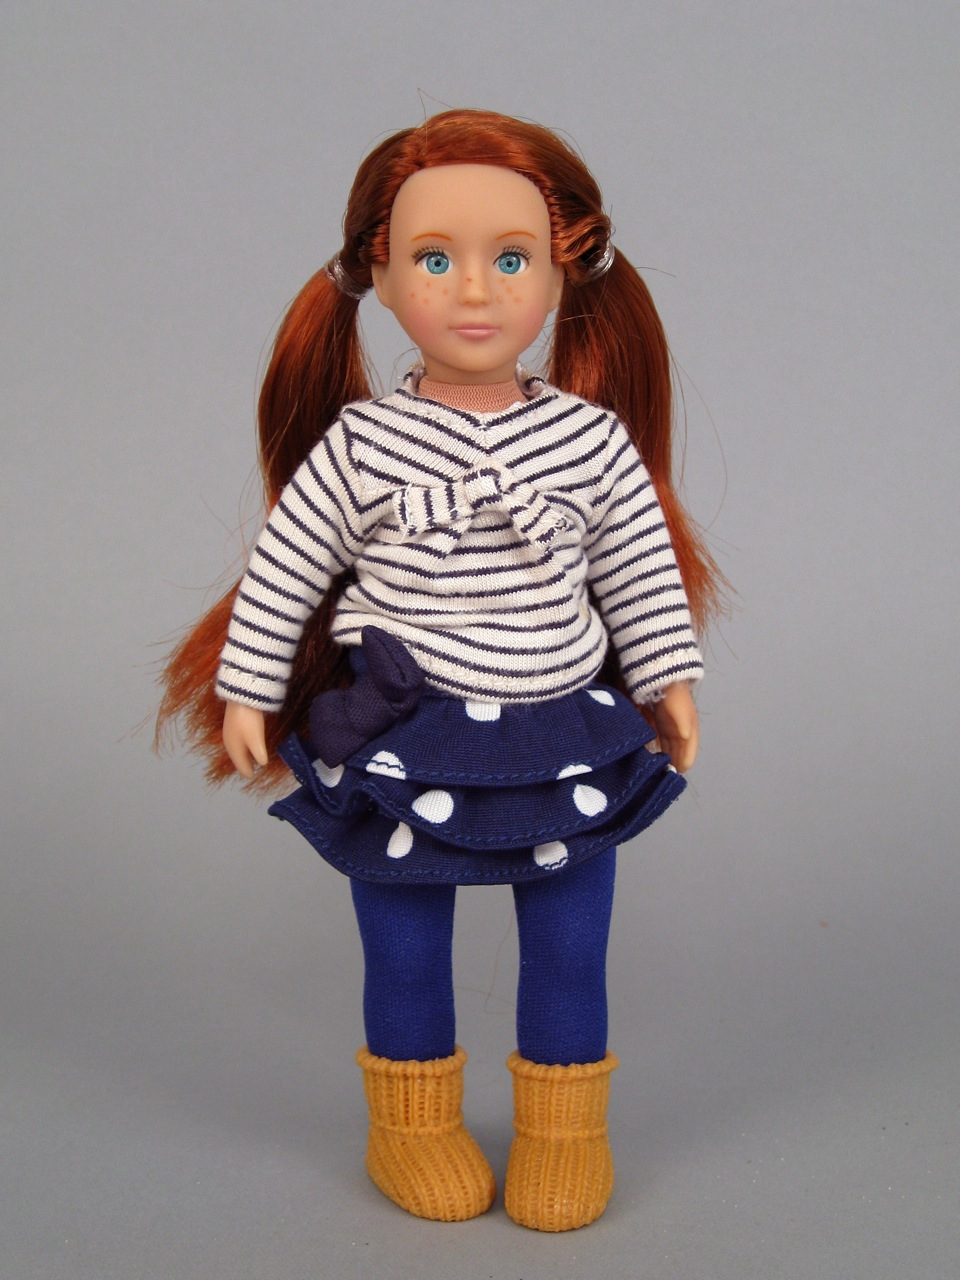 Our Generation mini doll Kendra